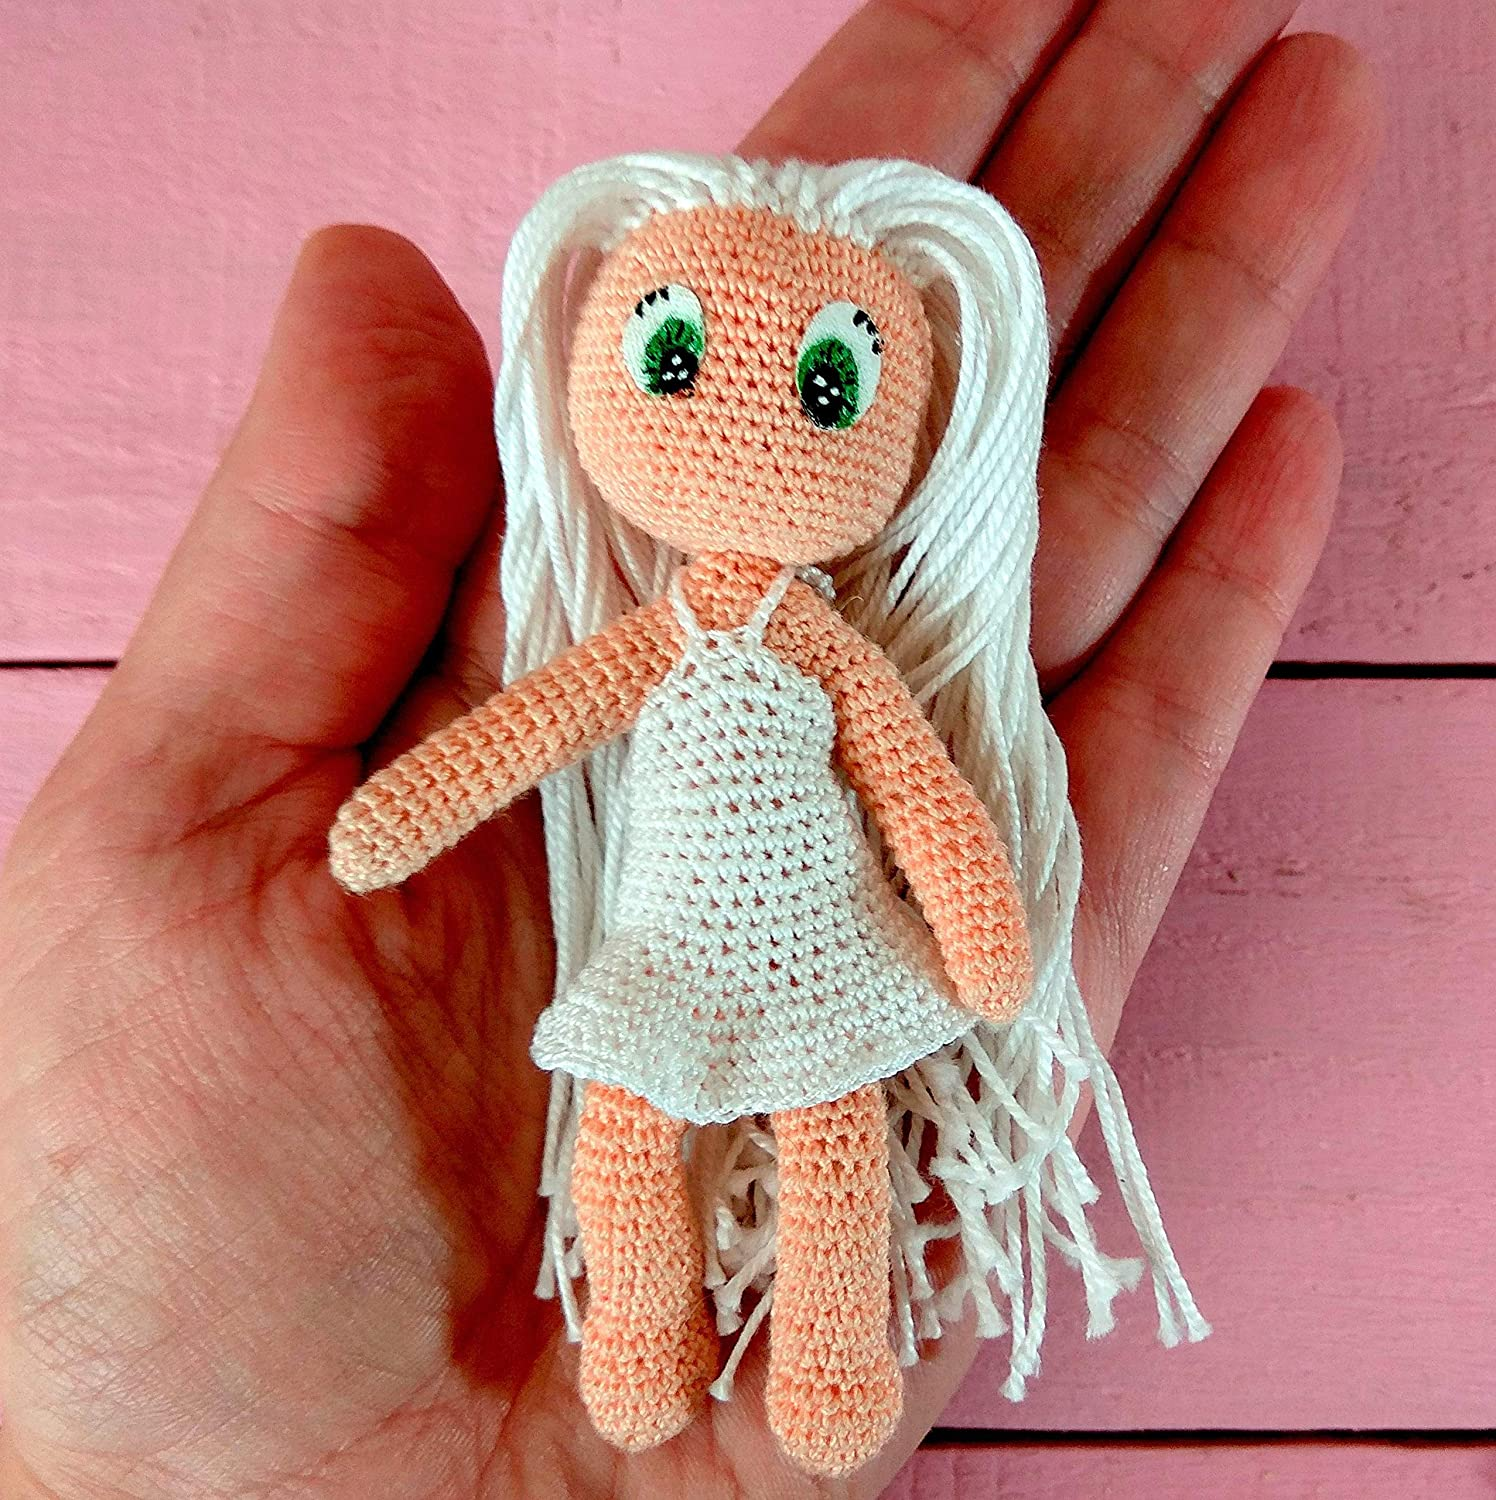 Mini Mimi Hair: Side Braid Crochet Pattern and Tutorial - Once Upon a  Cheerio | 1500x1496